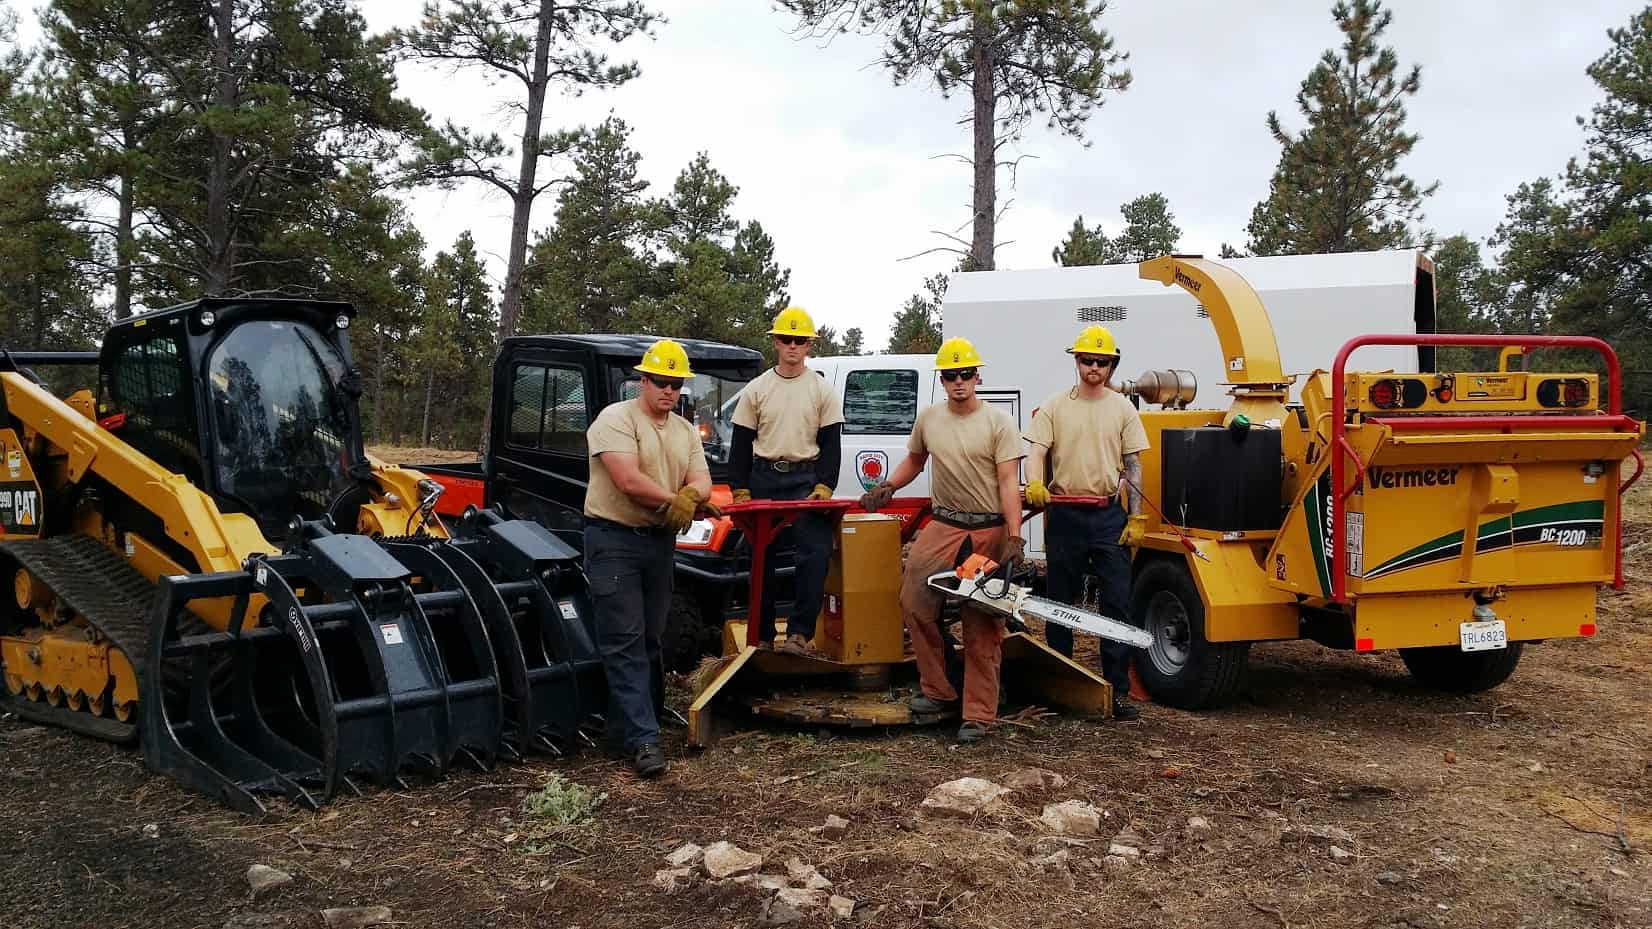 Four members of the mitigation crew (all veterans) pose in front of logging equipment